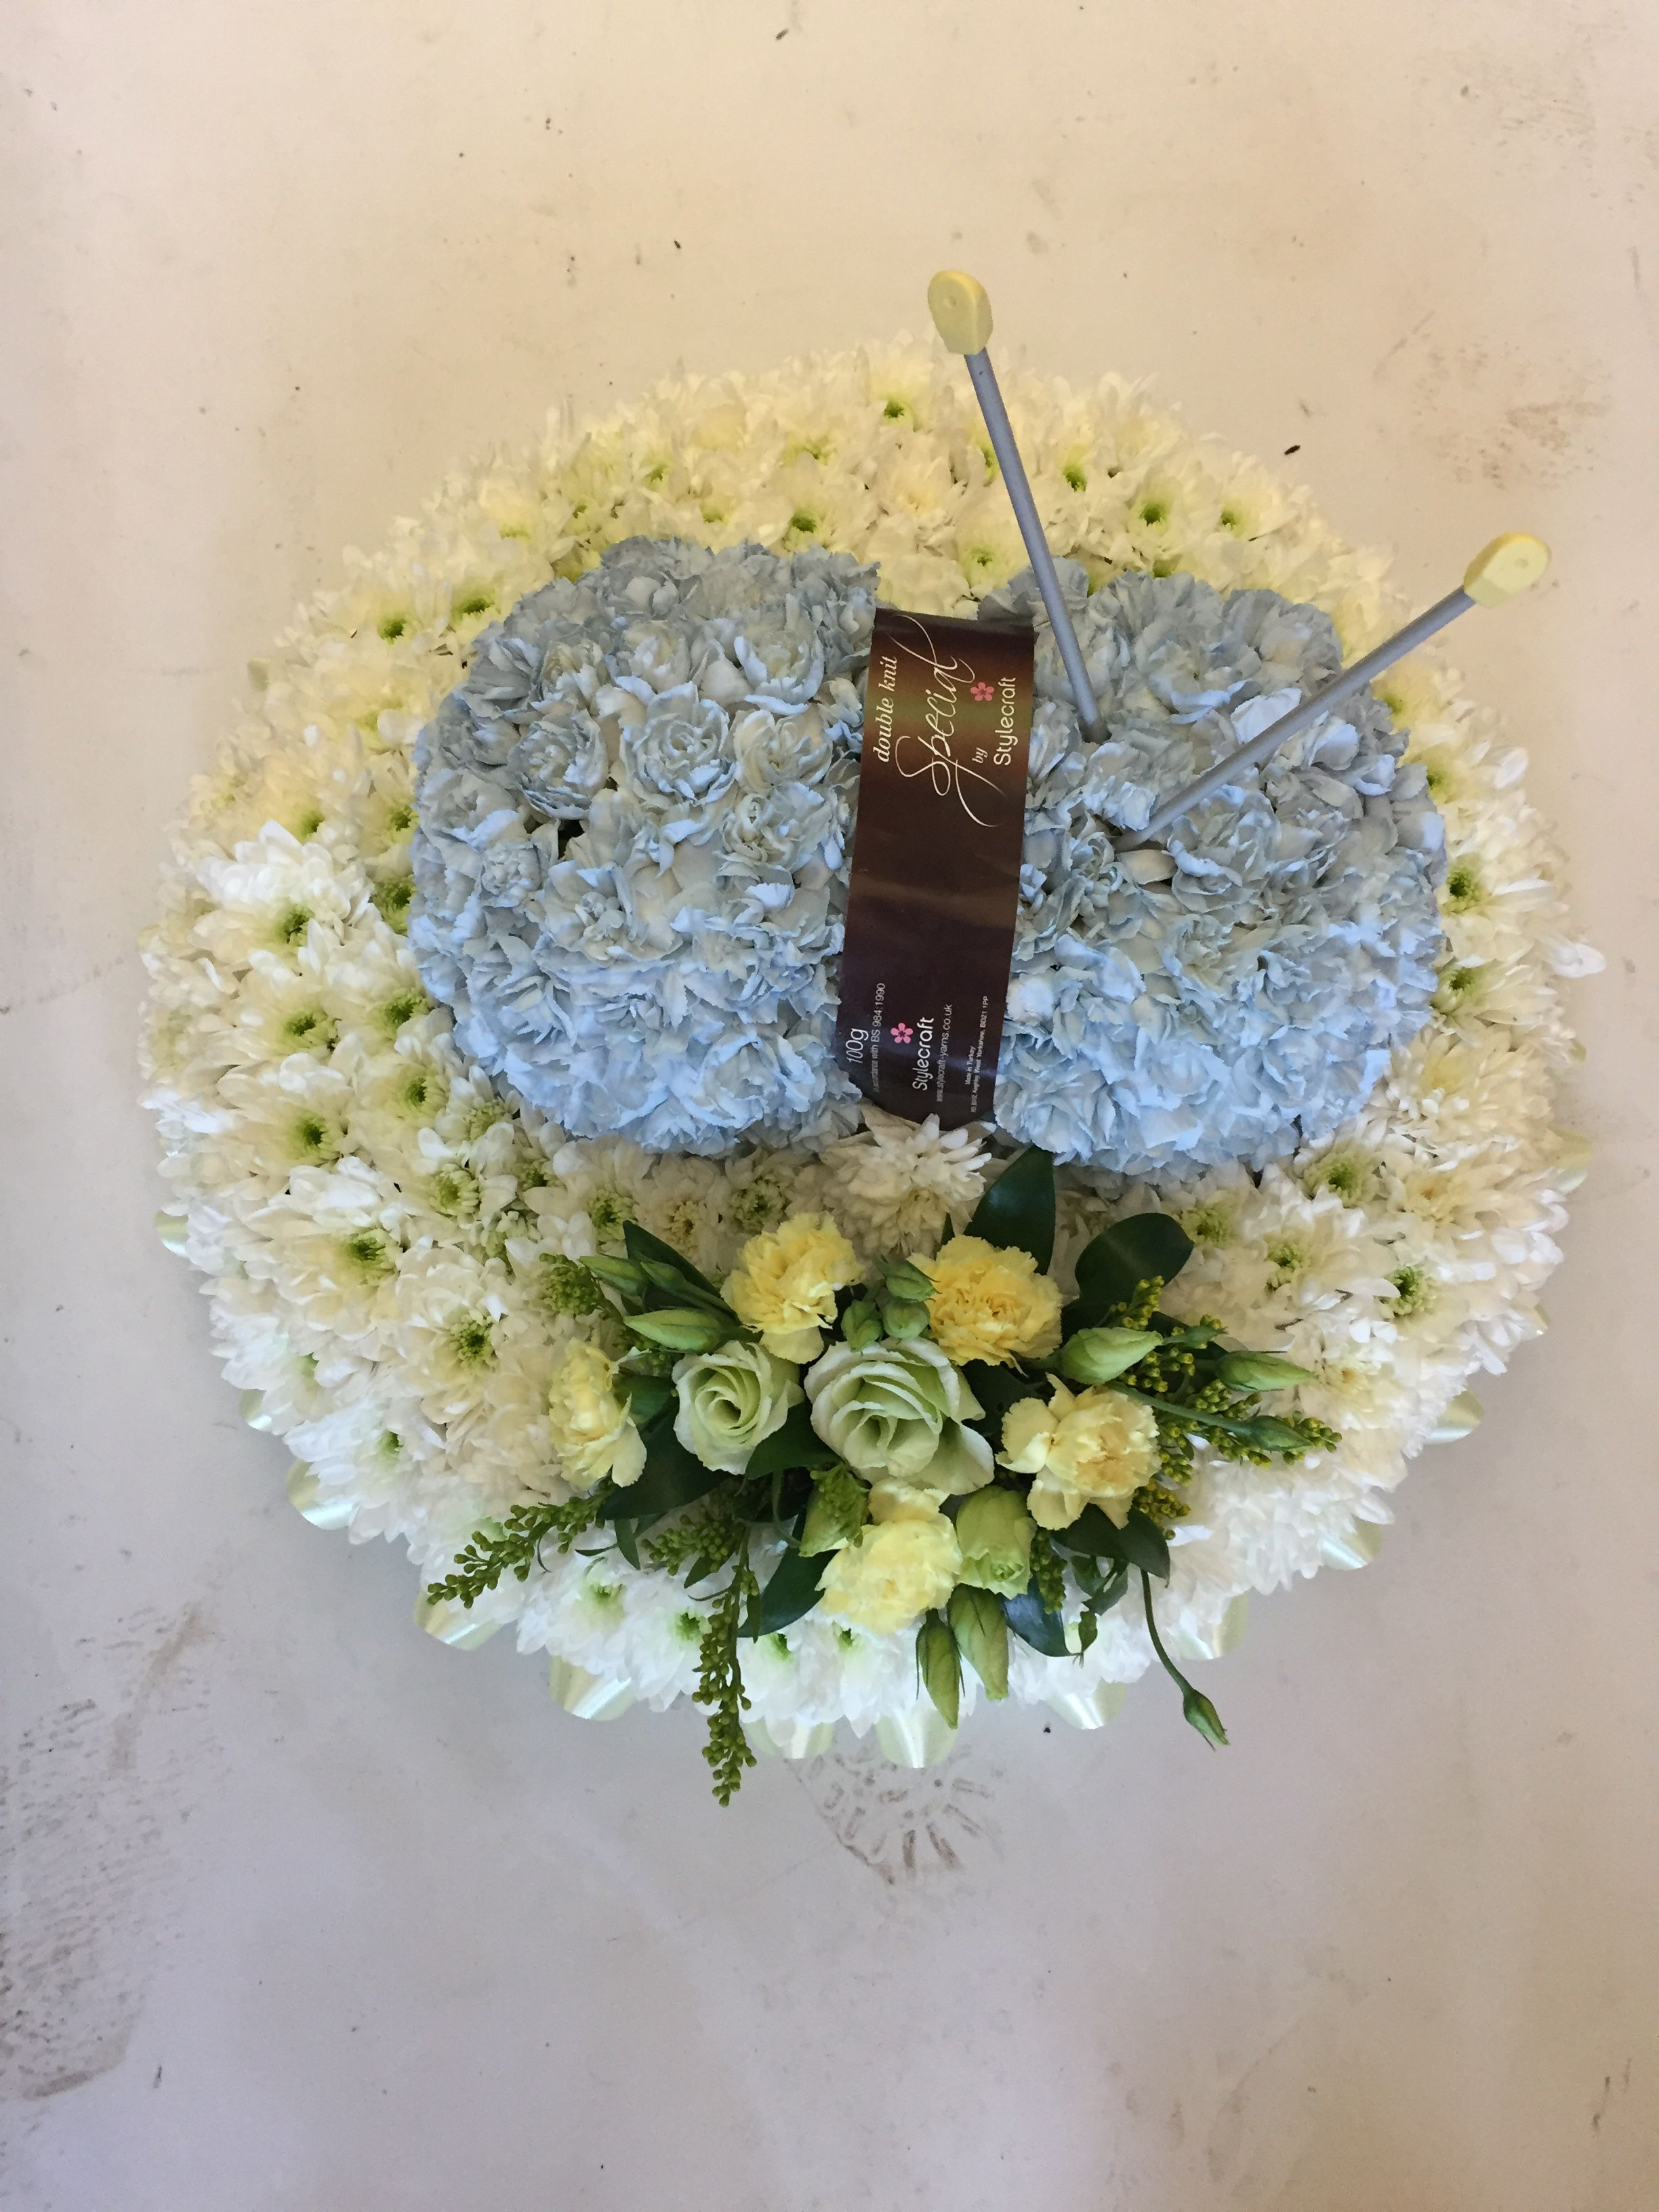 Knitting needles and a ball of wool as funeral flowers beautiful knitting needles and a ball of wool as funeral flowers beautiful tribute dhlflorist Choice Image